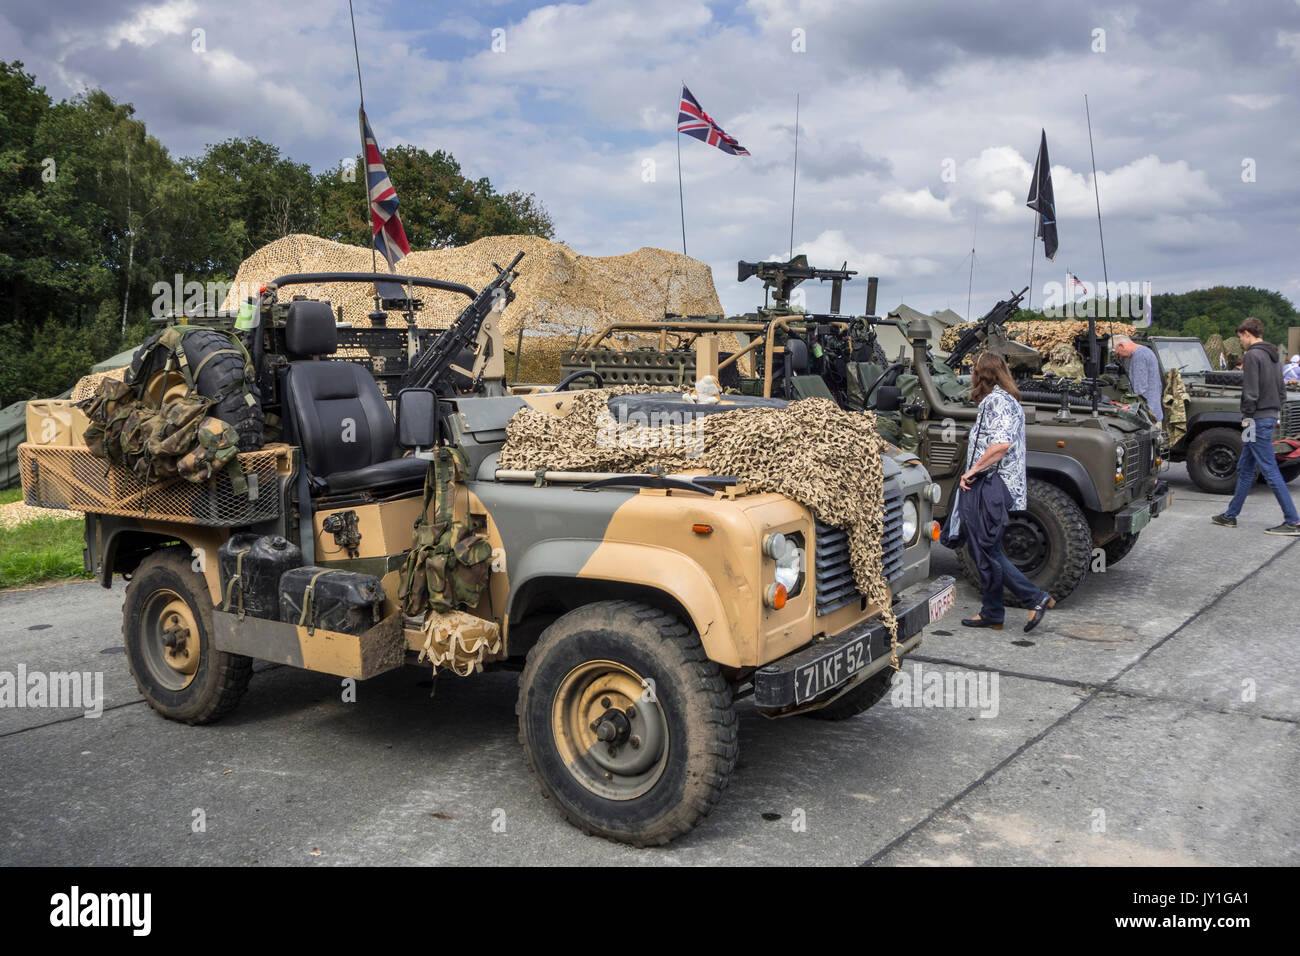 Armed military Land Rover 90, British army four-wheel-drive off-road vehicles at militaria fair - Stock Image